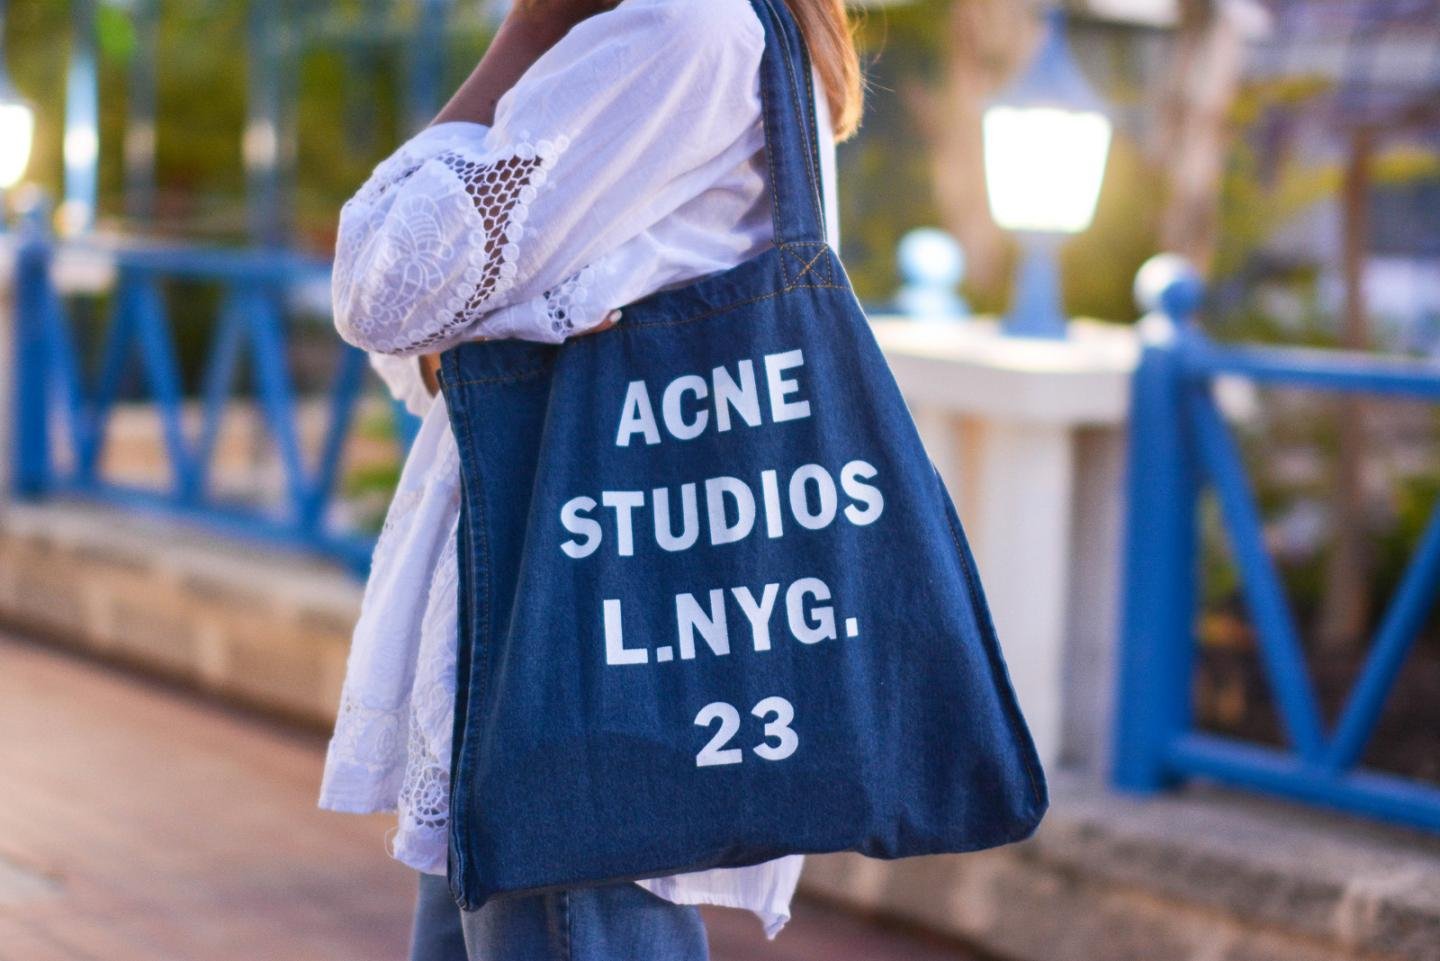 EJSTYLE - Emma Hill wears Acne Studios printed denim tote bag, white summer top with cut out embroidered detail